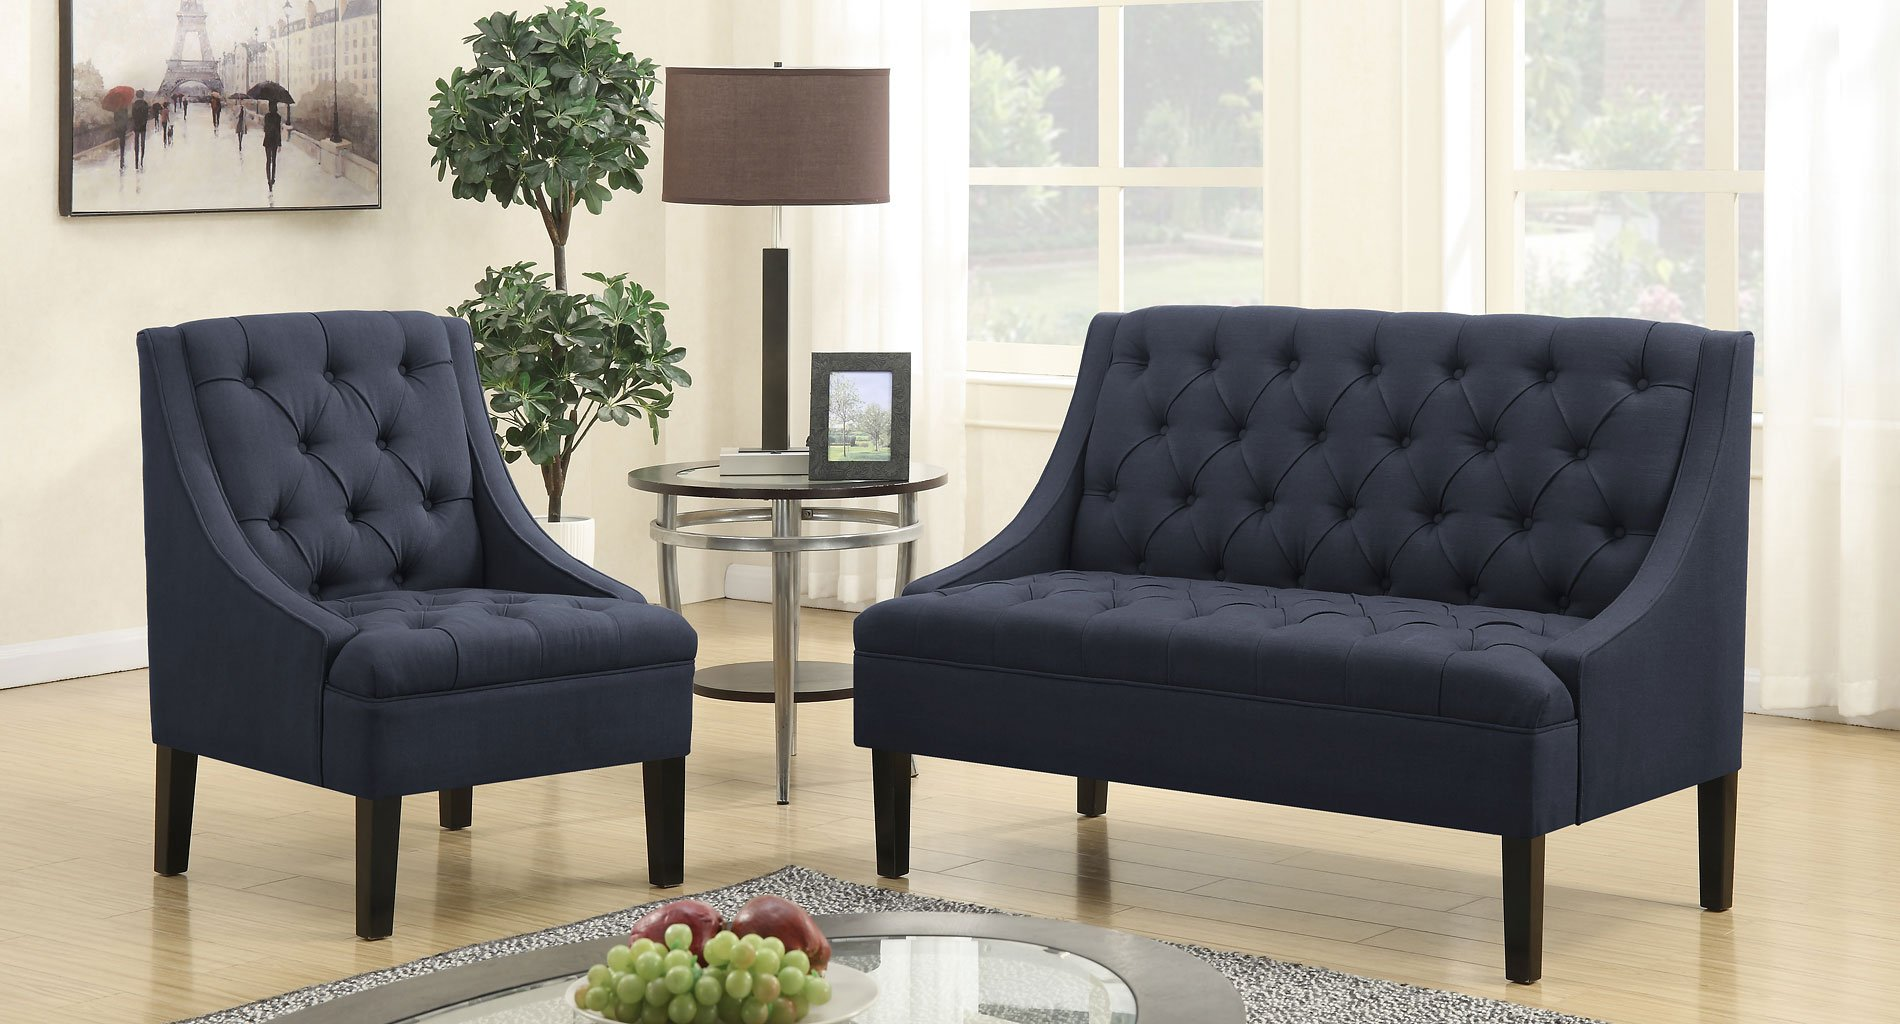 Vienna Twilight Upholstered Living Room Set